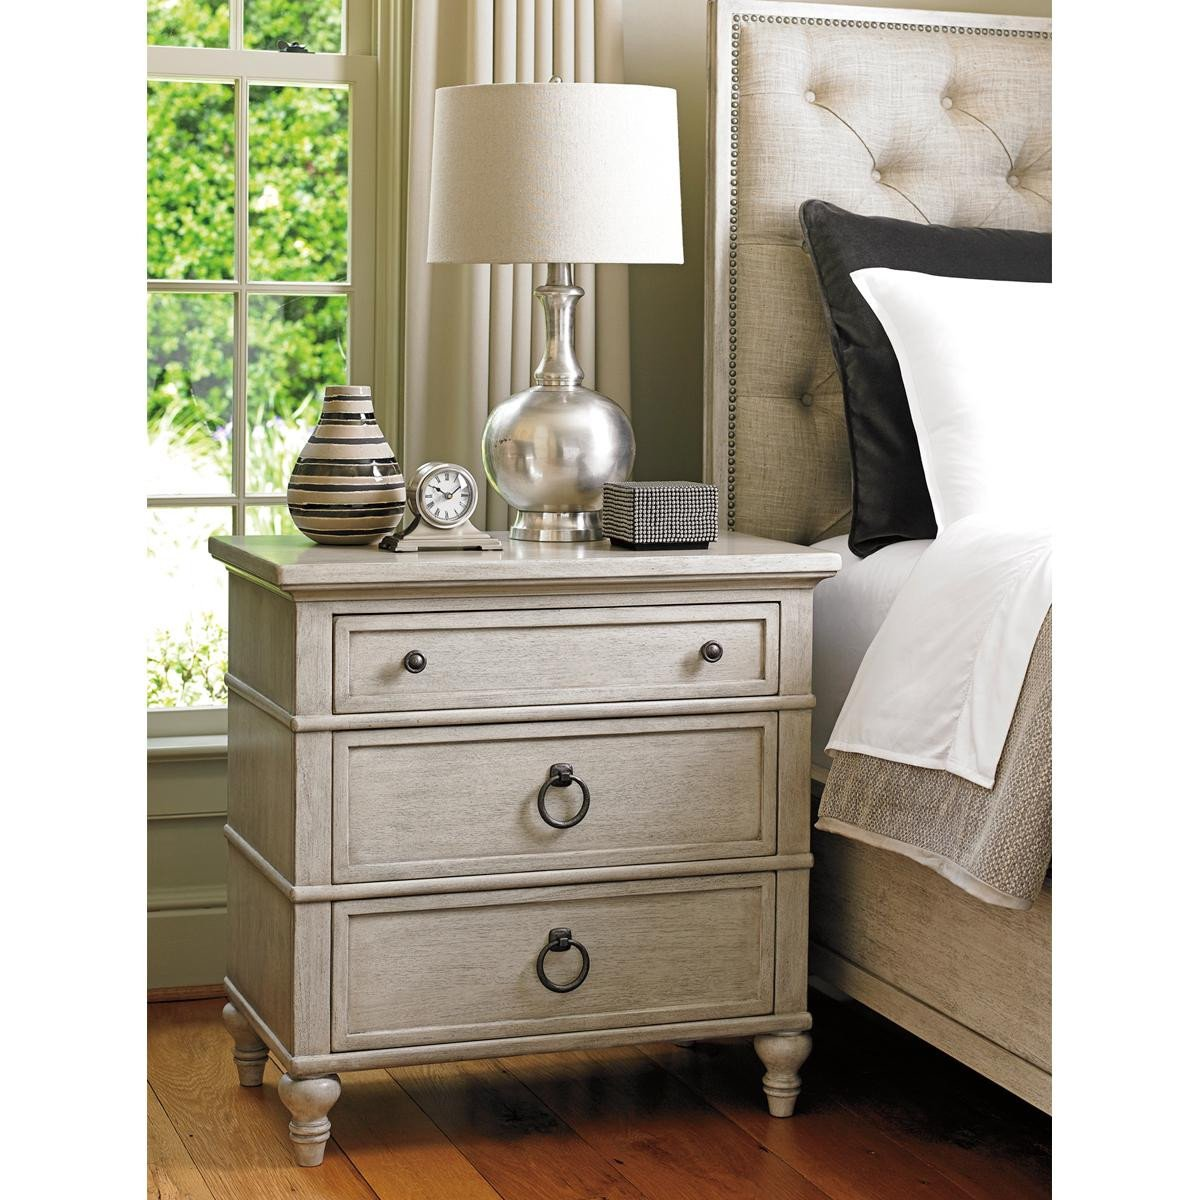 Used Lexington Bedroom Furniture Elegant Lexington Furniture Oyster Bay Cedarhurst Nightstand In